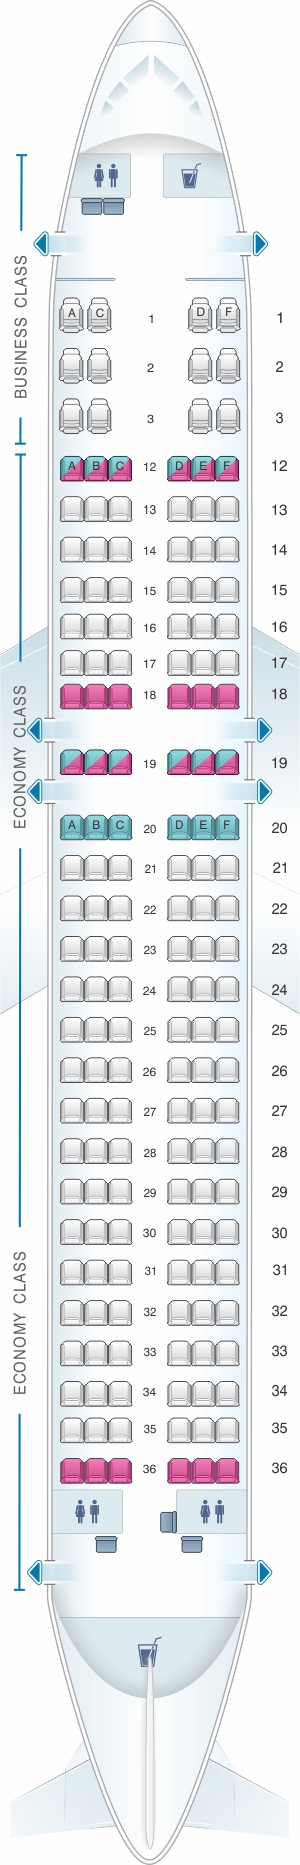 Seat map for Air Canada Airbus A320 200 Rouge